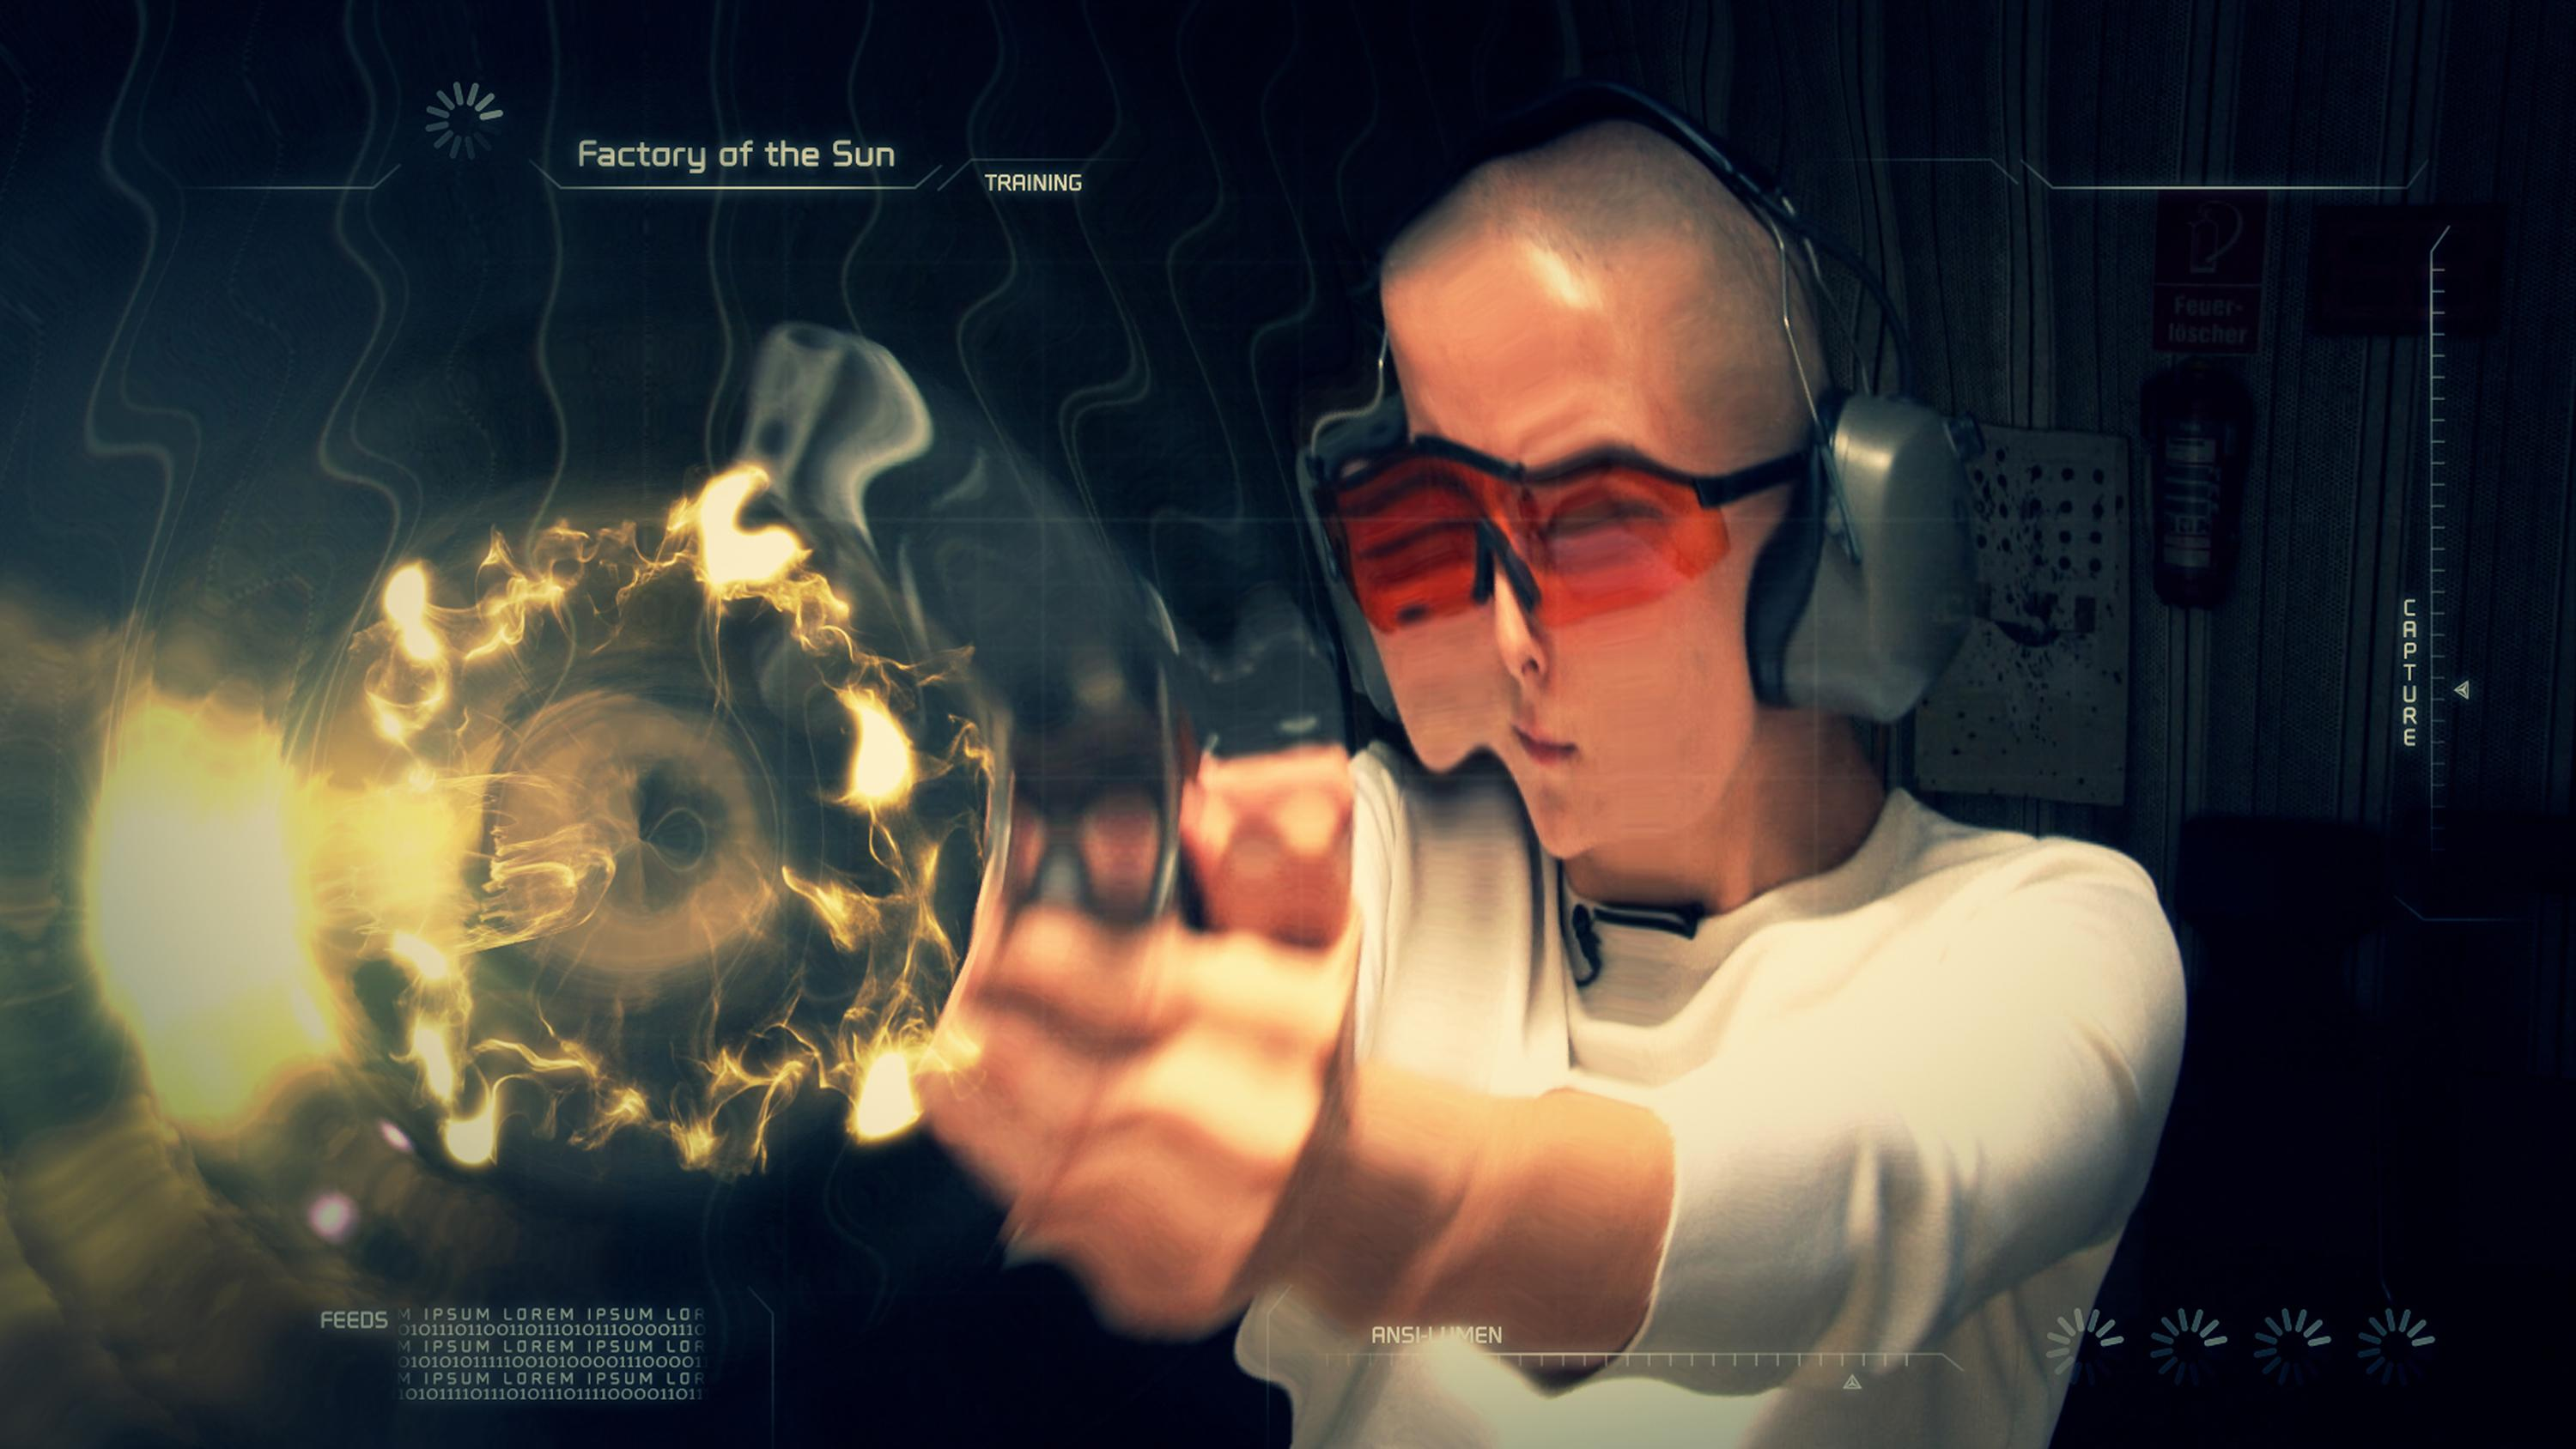 A light-skinned person with a shaved head and orange safety glasses fires a gun toward you. The image is warped in ripples, as if to visualize the bullet's path through the air.